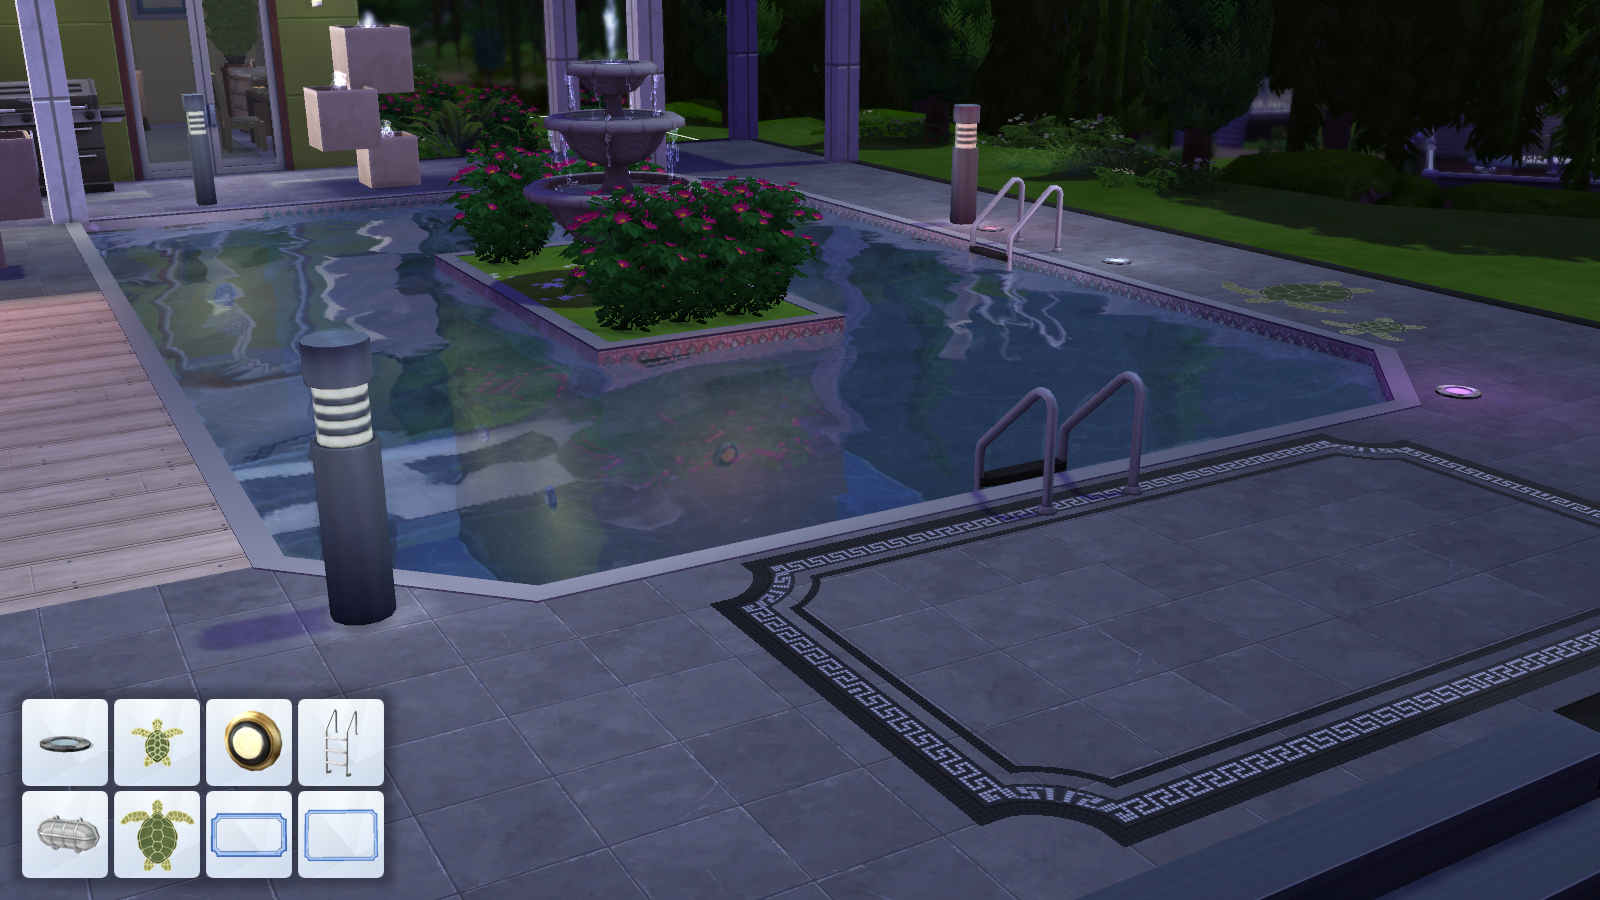 The sims 4 updates page 2 simcitizens for Pool design sims 4